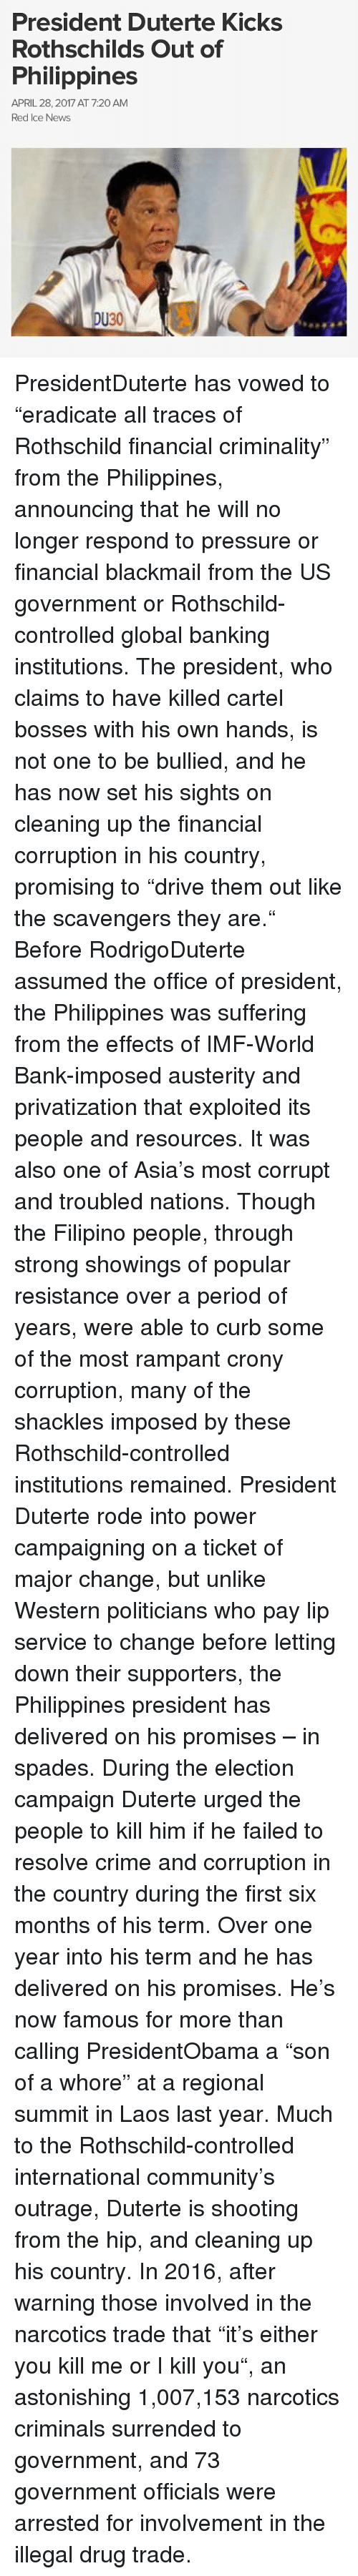 "Cartelling: President Duterte Kicks  Rothschilds Out of  Philippines  APRIL 28, 2017 AT 7:20 AM  Red Ice News  DU30 PresidentDuterte has vowed to ""eradicate all traces of Rothschild financial criminality"" from the Philippines, announcing that he will no longer respond to pressure or financial blackmail from the US government or Rothschild-controlled global banking institutions. The president, who claims to have killed cartel bosses with his own hands, is not one to be bullied, and he has now set his sights on cleaning up the financial corruption in his country, promising to ""drive them out like the scavengers they are."" Before RodrigoDuterte assumed the office of president, the Philippines was suffering from the effects of IMF-World Bank-imposed austerity and privatization that exploited its people and resources. It was also one of Asia's most corrupt and troubled nations. Though the Filipino people, through strong showings of popular resistance over a period of years, were able to curb some of the most rampant crony corruption, many of the shackles imposed by these Rothschild-controlled institutions remained. President Duterte rode into power campaigning on a ticket of major change, but unlike Western politicians who pay lip service to change before letting down their supporters, the Philippines president has delivered on his promises – in spades. During the election campaign Duterte urged the people to kill him if he failed to resolve crime and corruption in the country during the first six months of his term. Over one year into his term and he has delivered on his promises. He's now famous for more than calling PresidentObama a ""son of a whore"" at a regional summit in Laos last year. Much to the Rothschild-controlled international community's outrage, Duterte is shooting from the hip, and cleaning up his country. In 2016, after warning those involved in the narcotics trade that ""it's either you kill me or I kill you"", an astonishing 1,007,153 narcotics criminals surrended to government, and 73 government officials were arrested for involvement in the illegal drug trade."